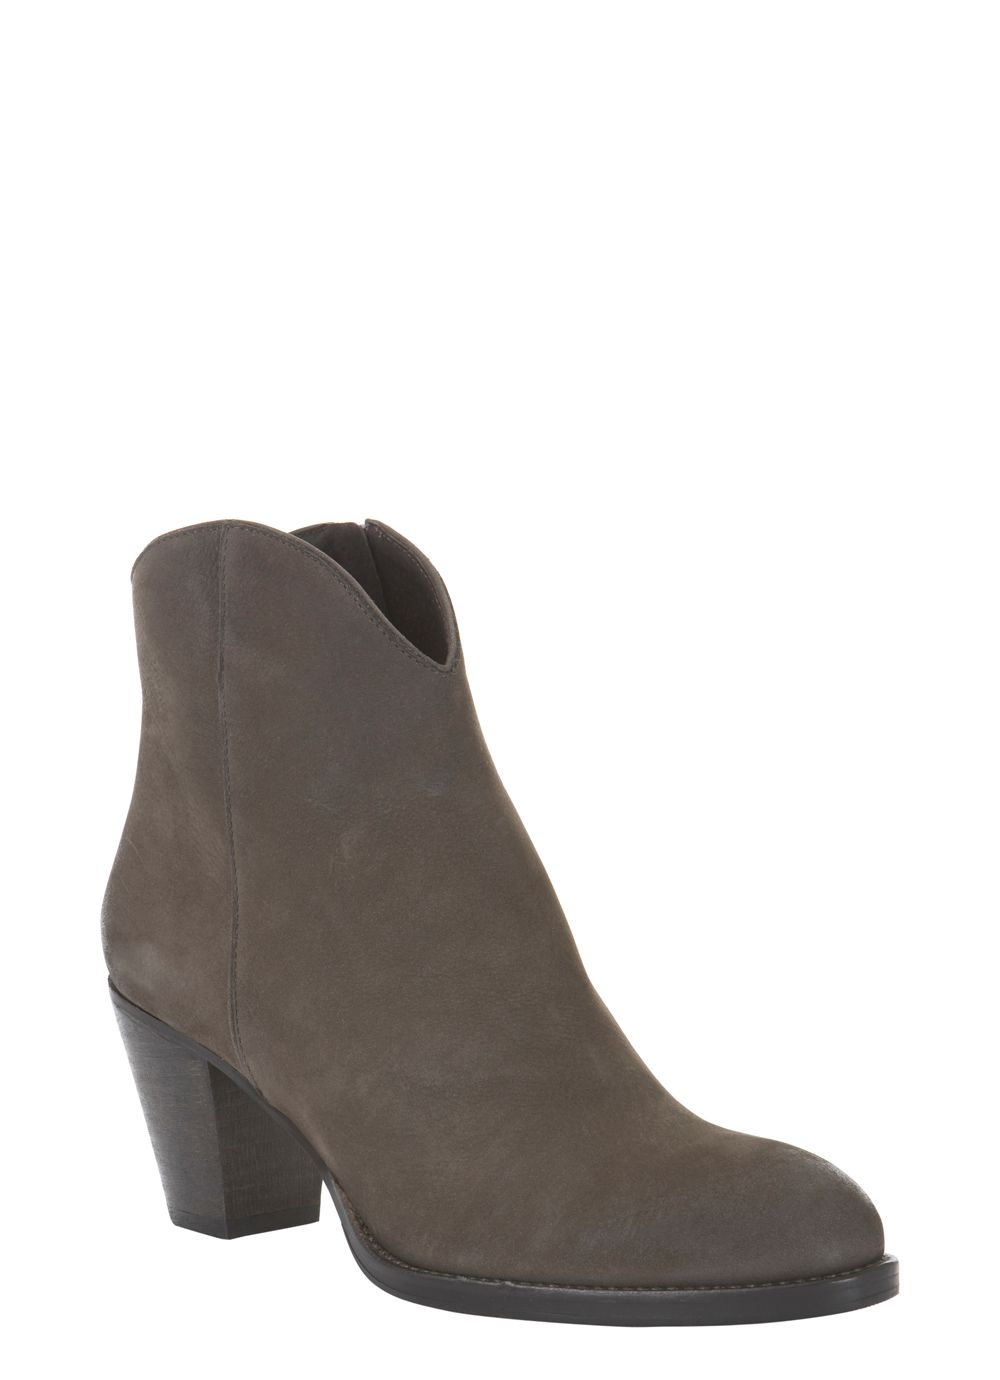 Storm grey ankle boots